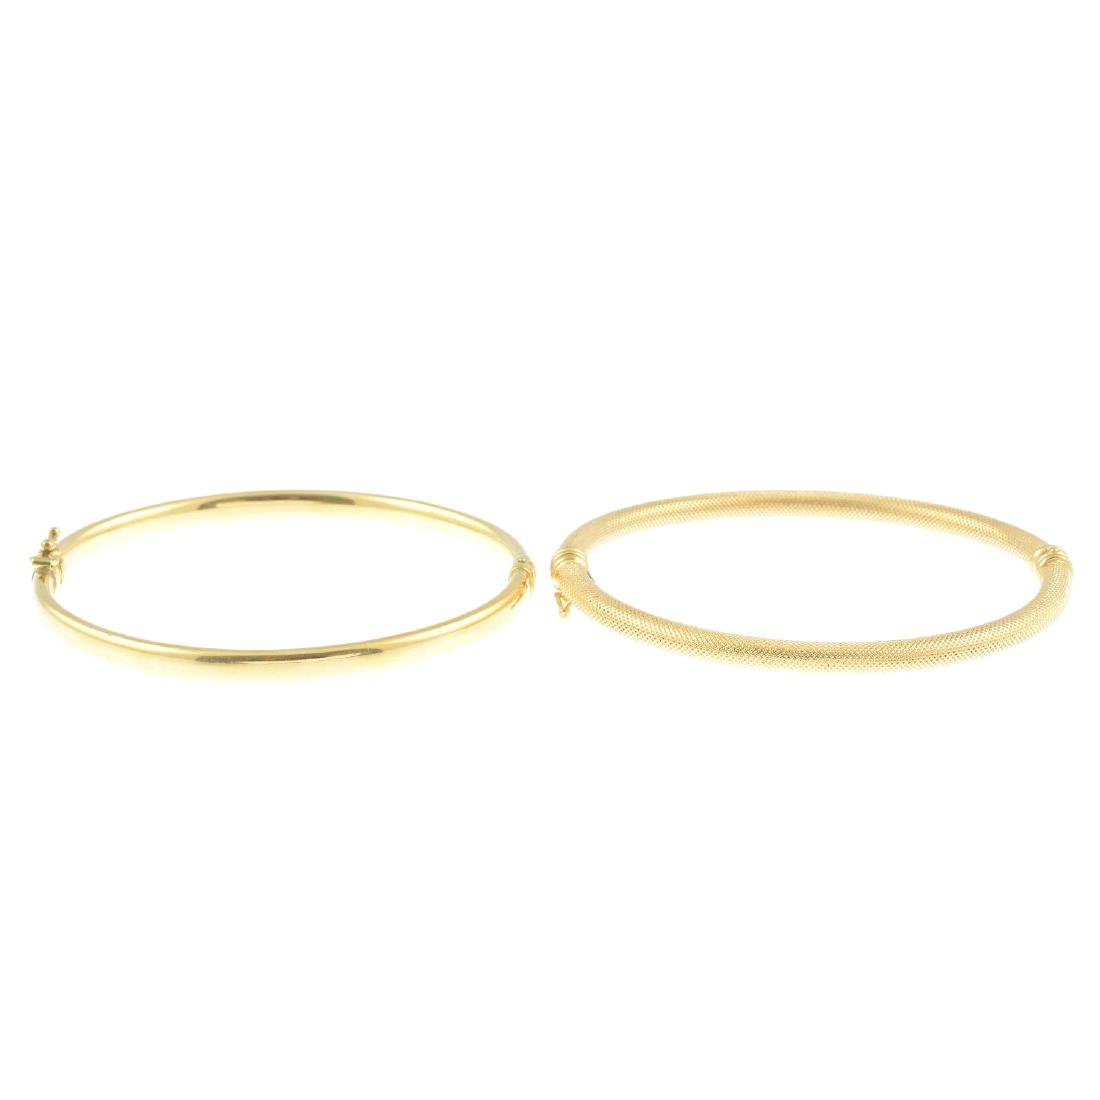 Two hinged bangles. To include a textured bangle and a